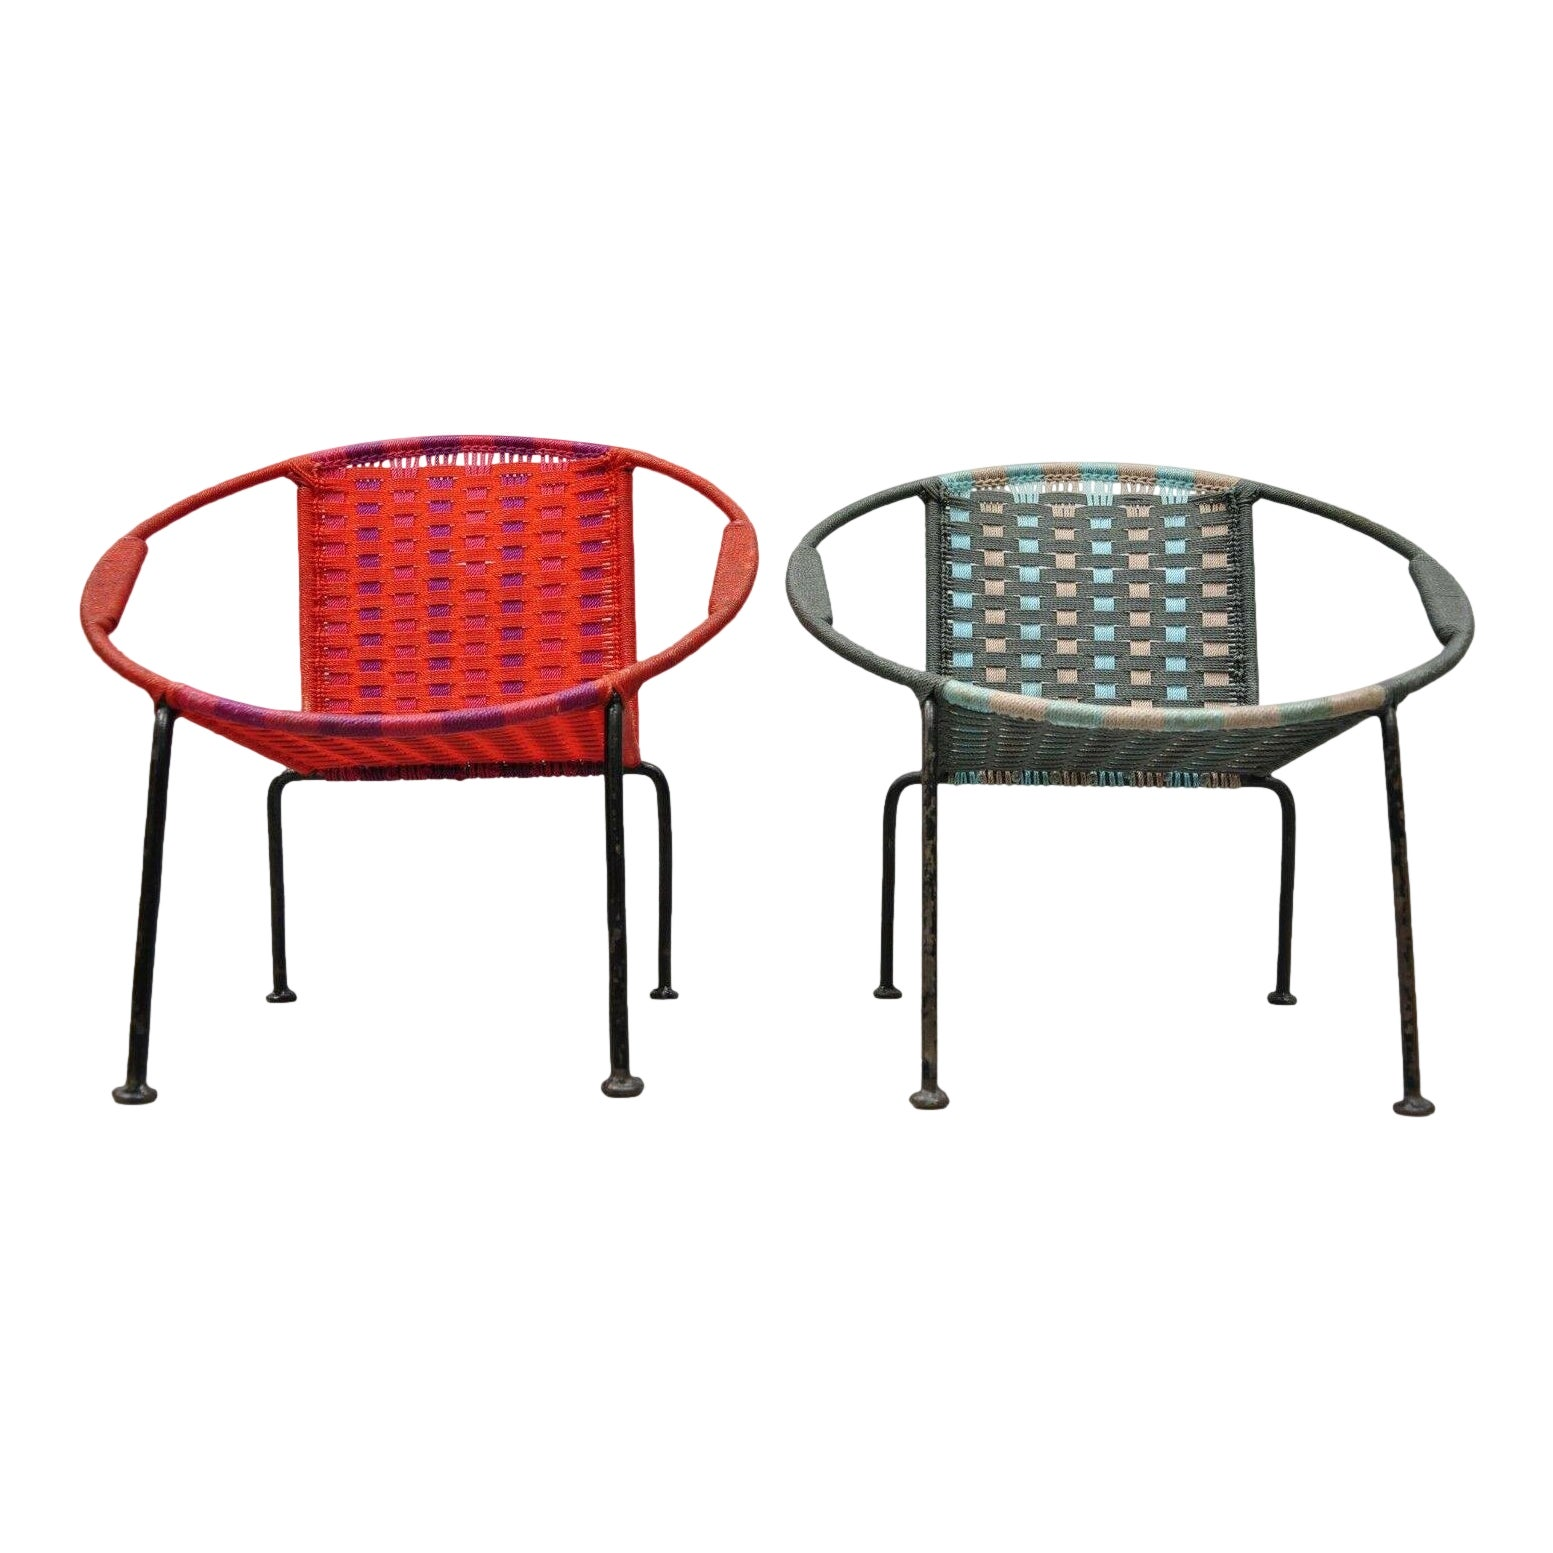 Vintage mid century childs mcm hoop saucer woven chairs a pair chairish